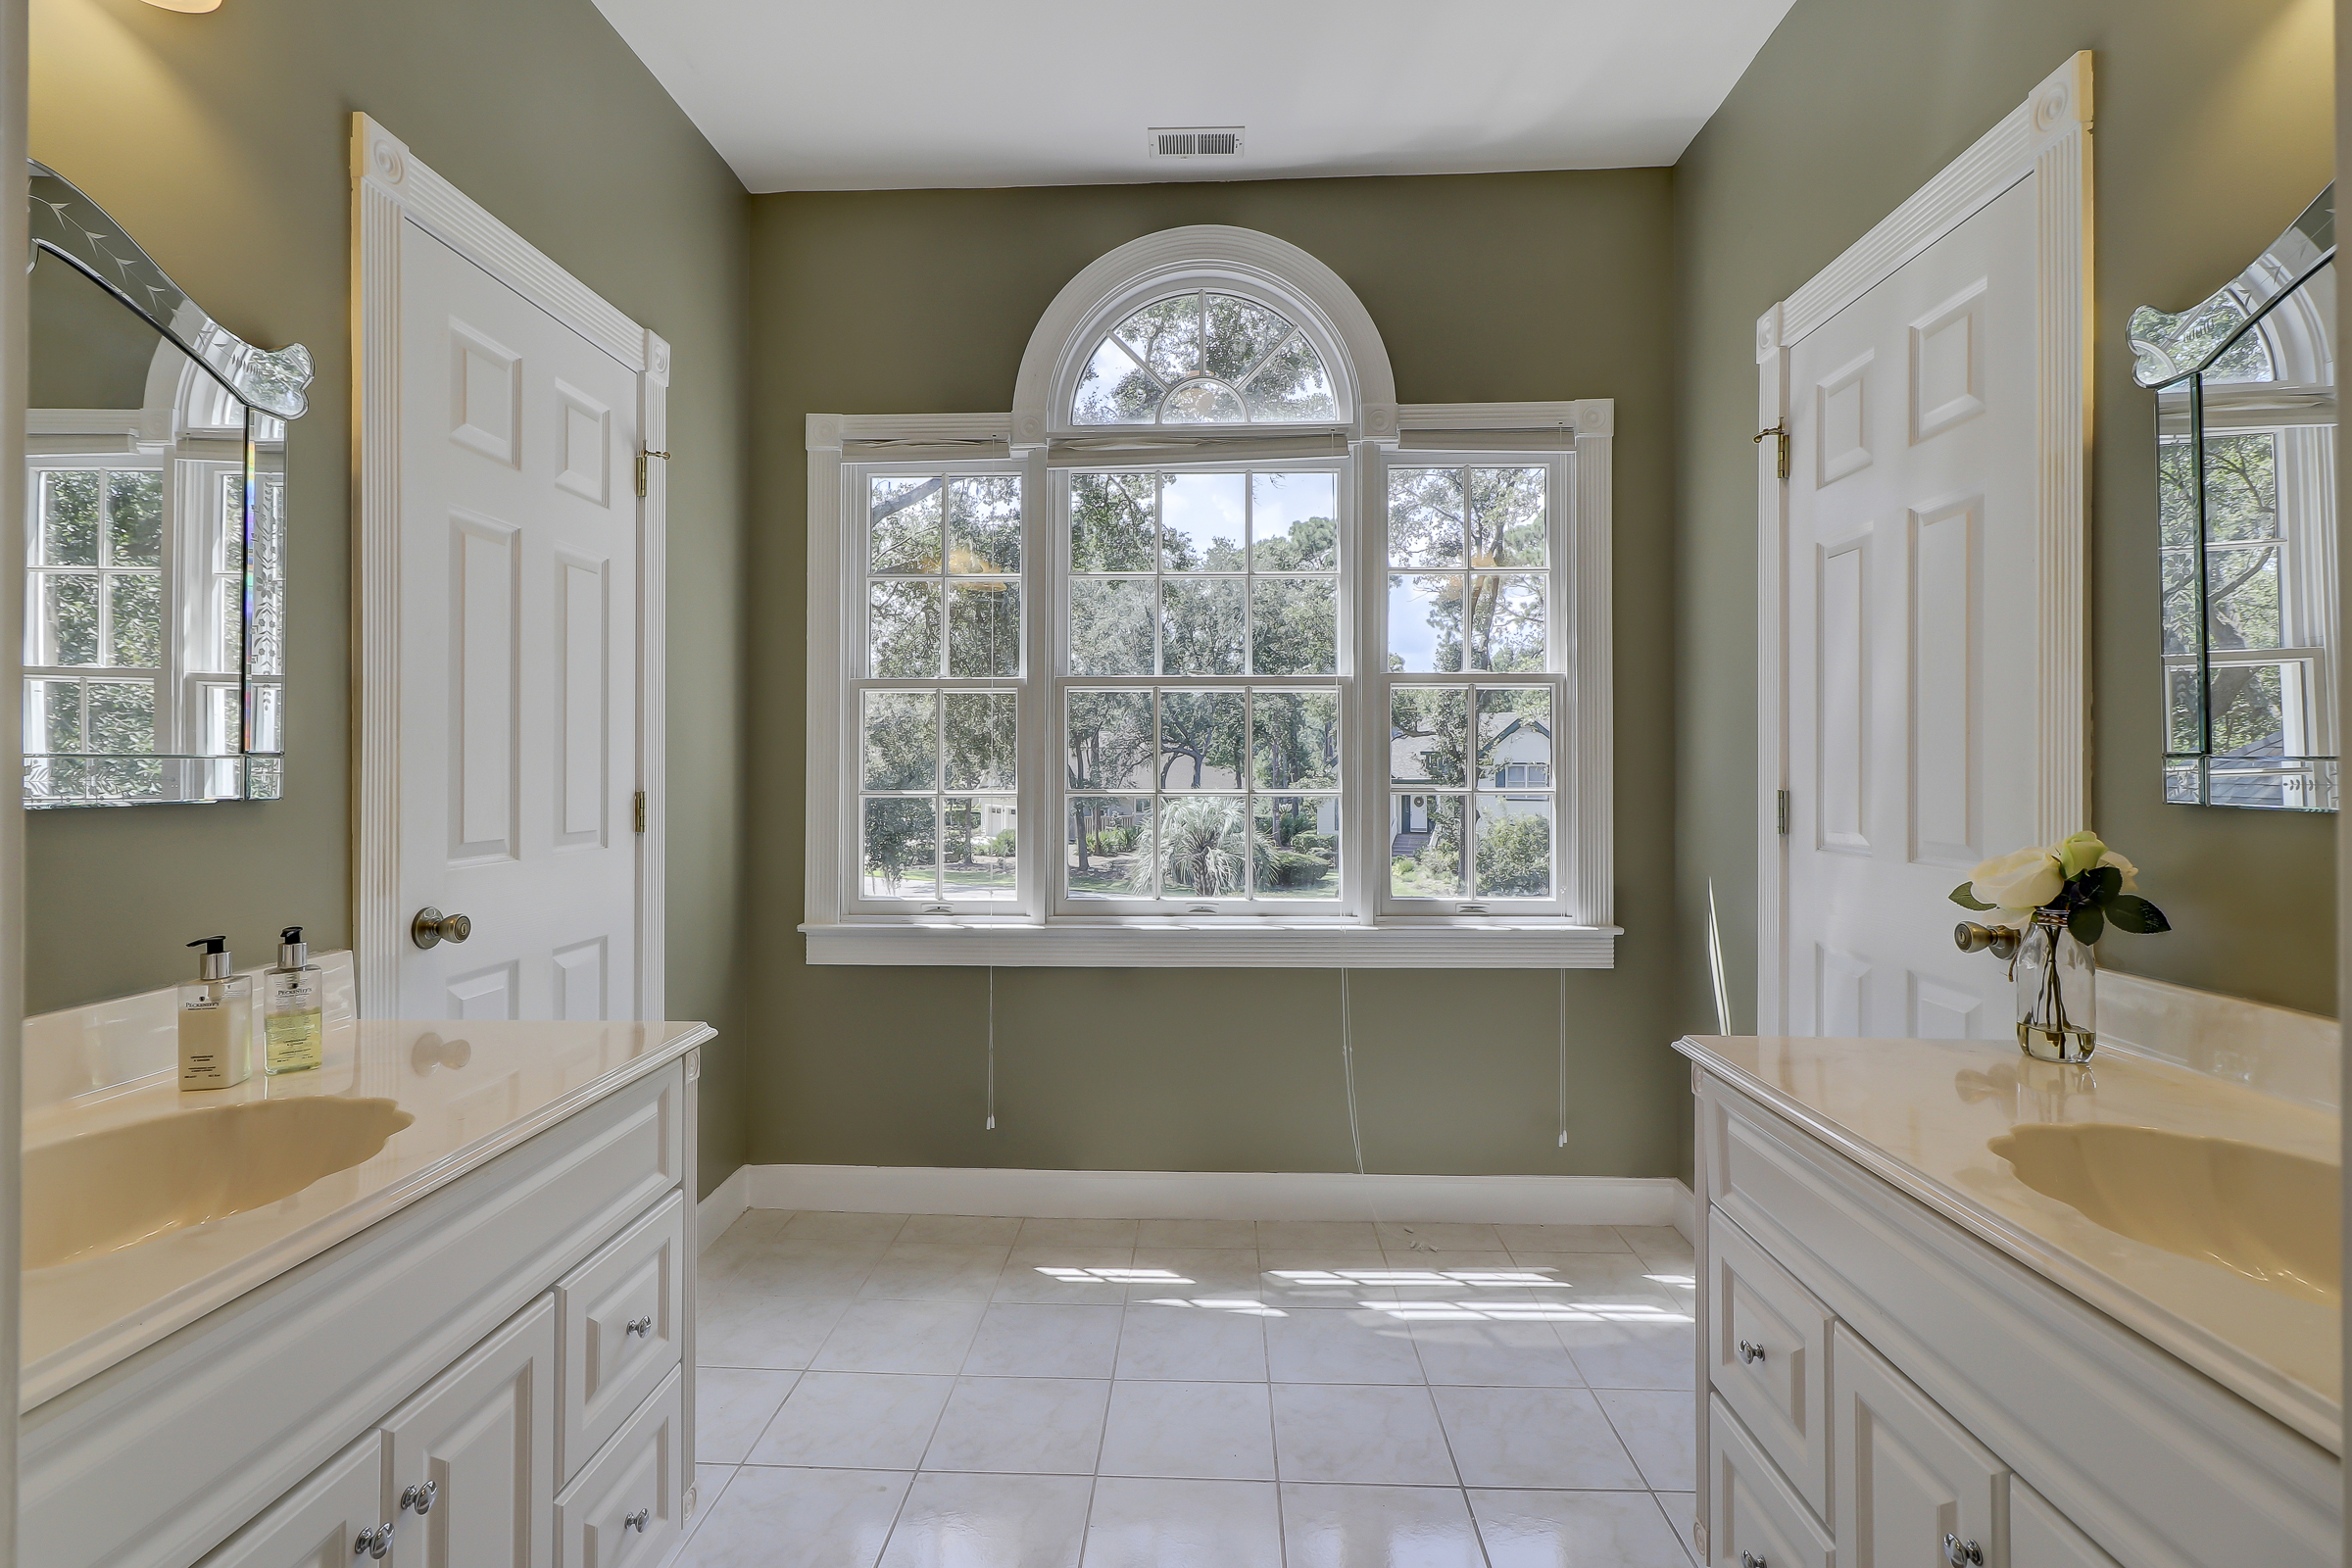 You will love this second floor Jack and Jill bath with his and her vanities and a private bath and toilet area.  Triple windows and a half round transom make this an incredibly special space.